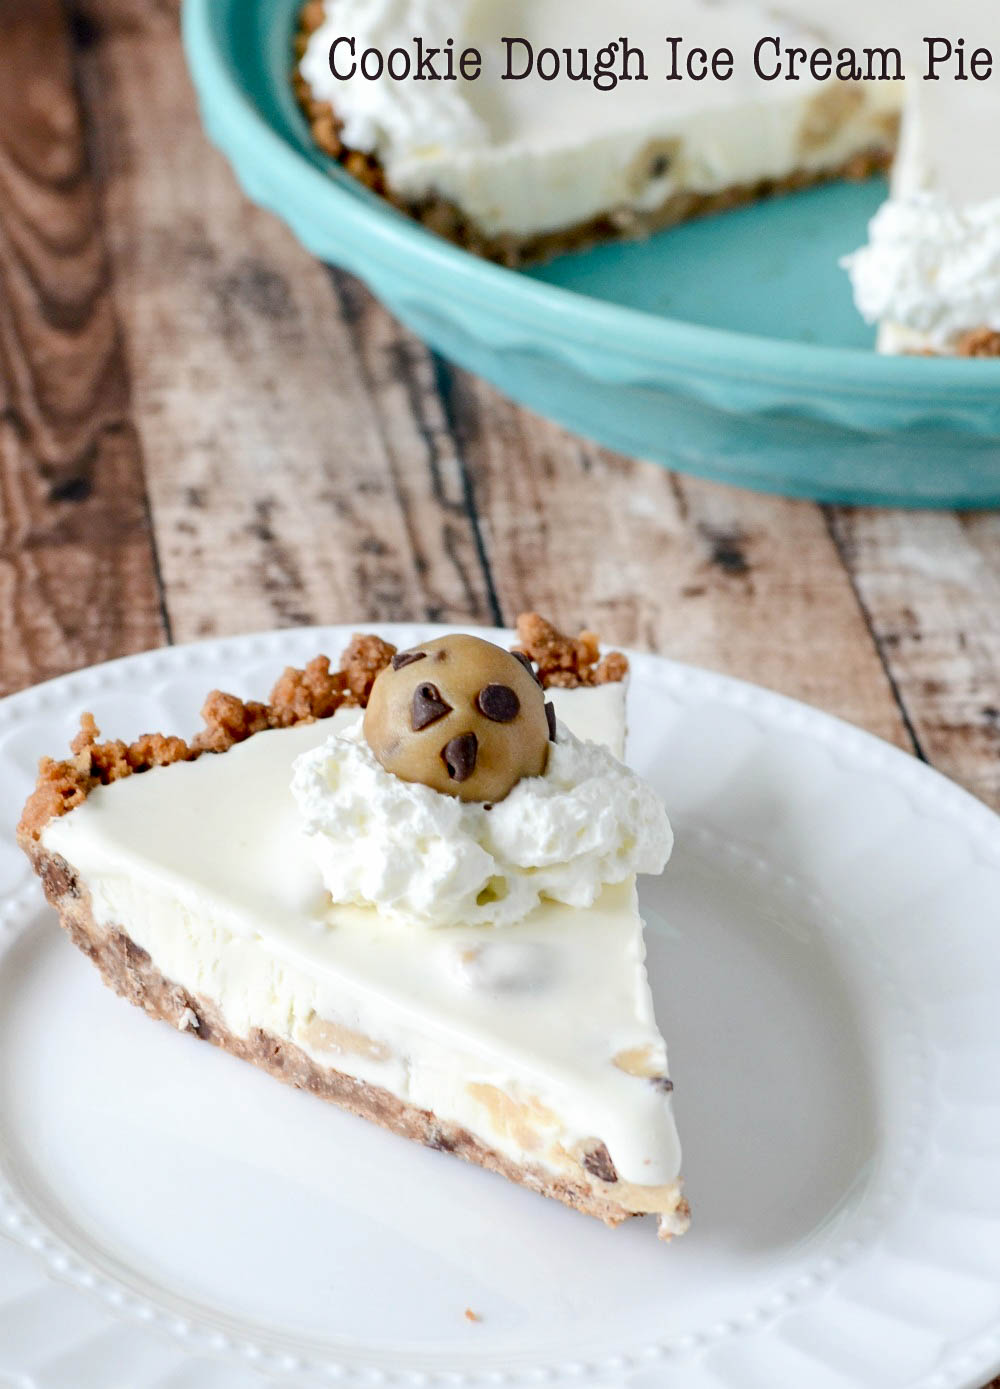 Cookie Dough Ice Cream Pie - eggless cookie dough inside a rich and creamy frozen pie. So yummy!